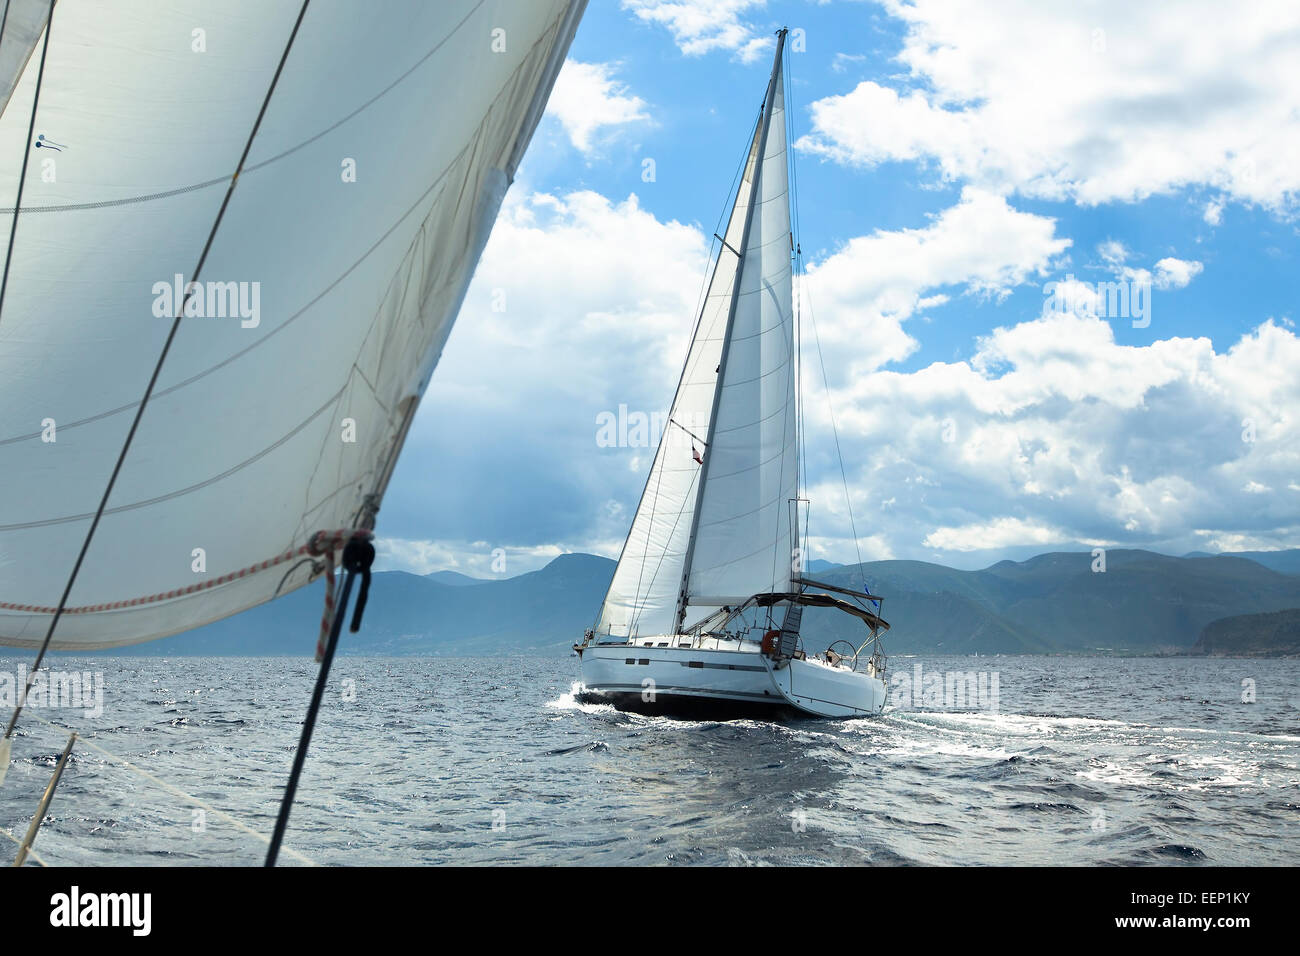 Sailing regatta in inclement weather. Sailboats. Yachting. - Stock Image